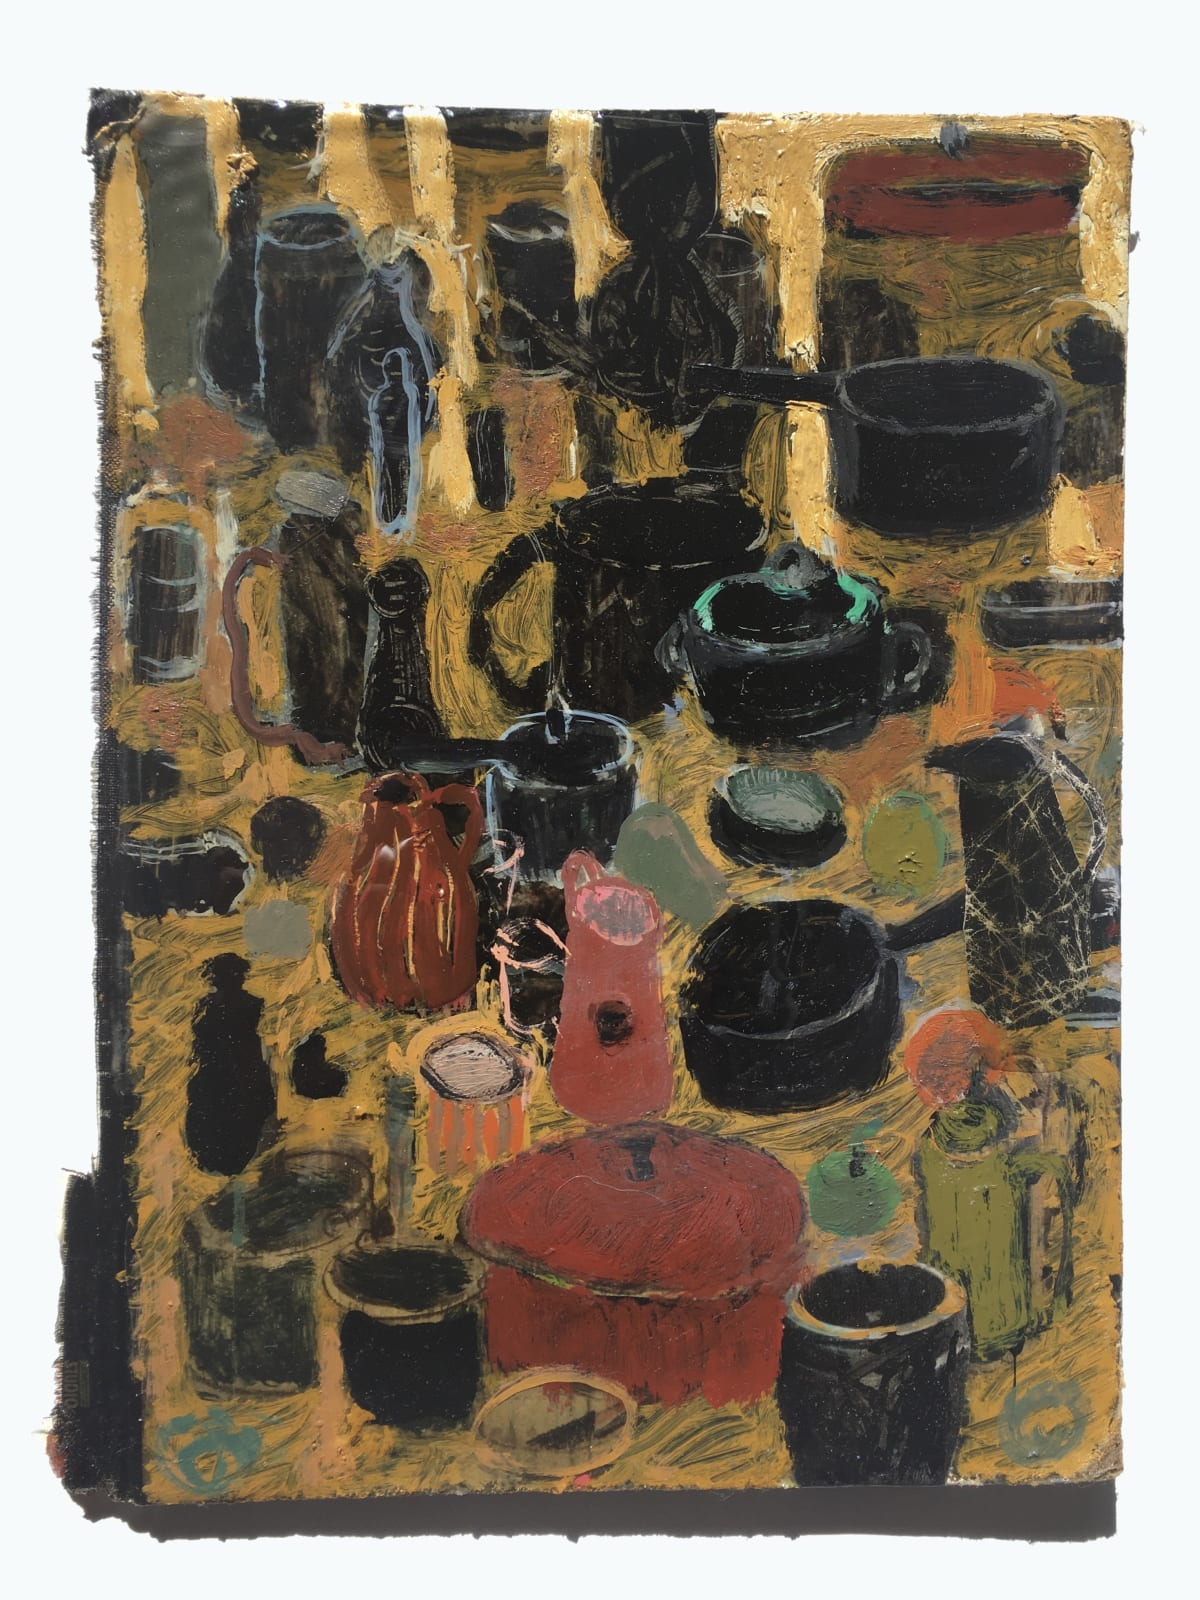 Andrew Cranston Still life with Pots and Pans, 2020